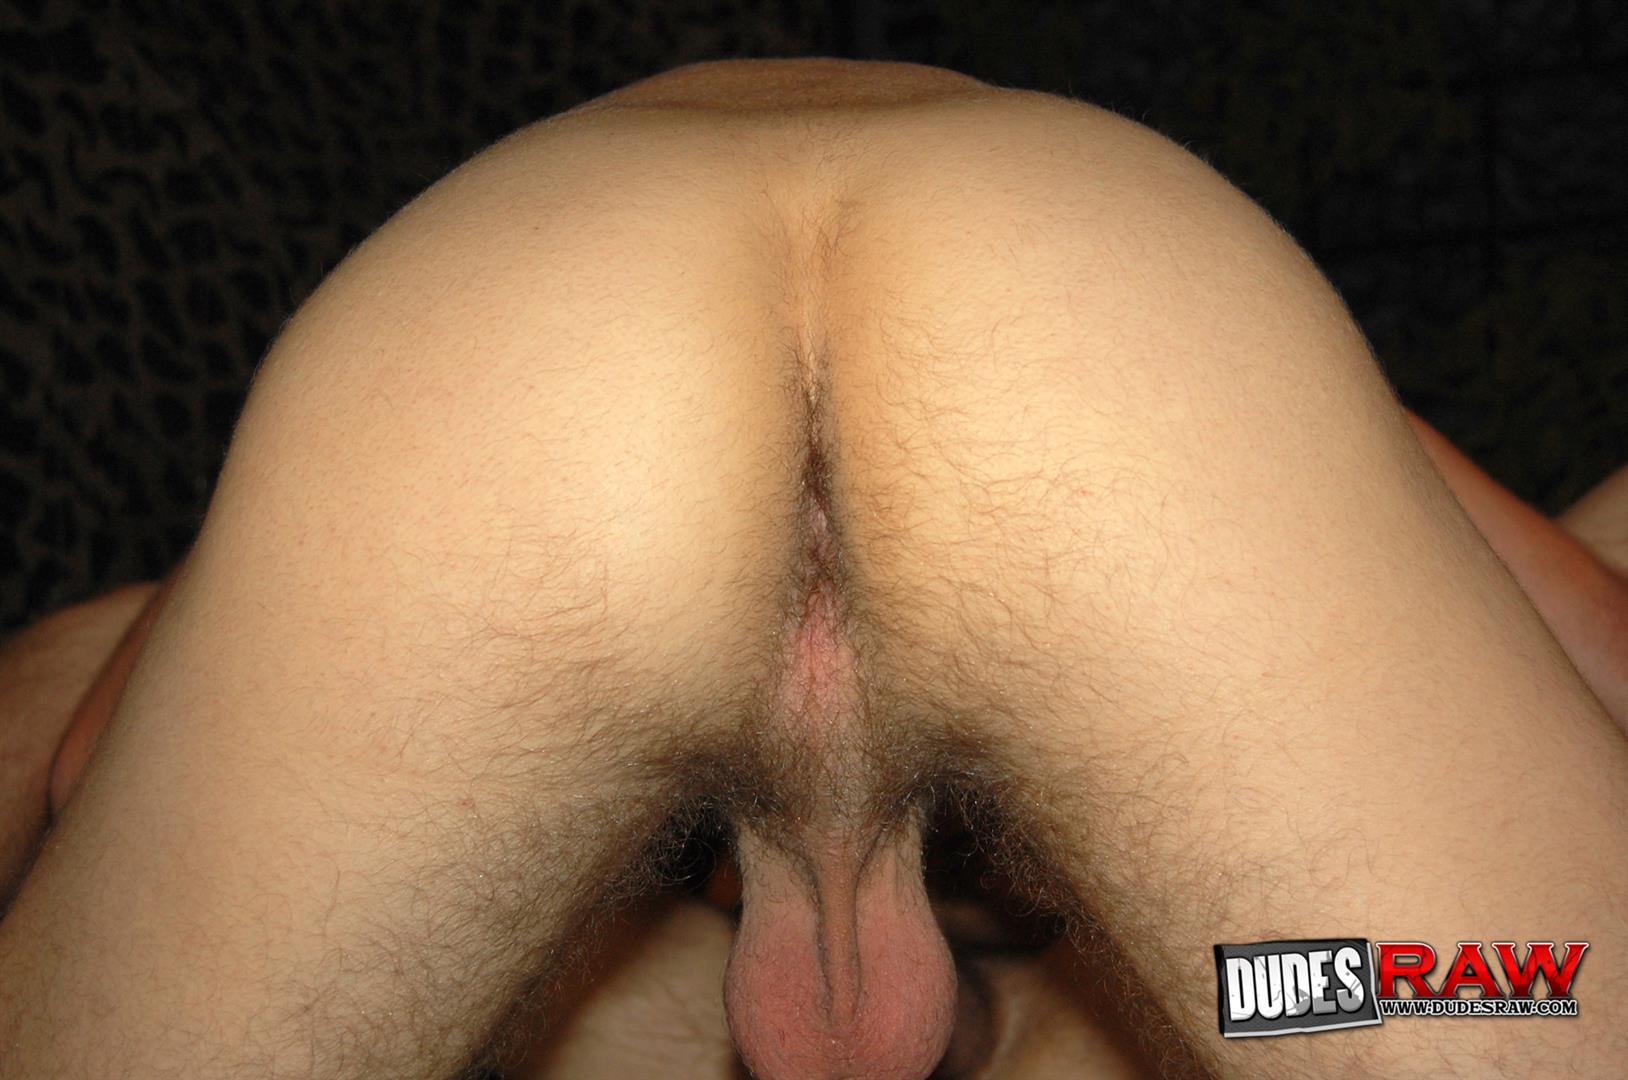 Dudes-Raw-Jacques-Satori-and-Zeke-Stardust-Army-Guys-Barebacking-Amateur-Gay-Porn-13 Army Guys Discover Gay Sex and Bareback Fuck Each Other